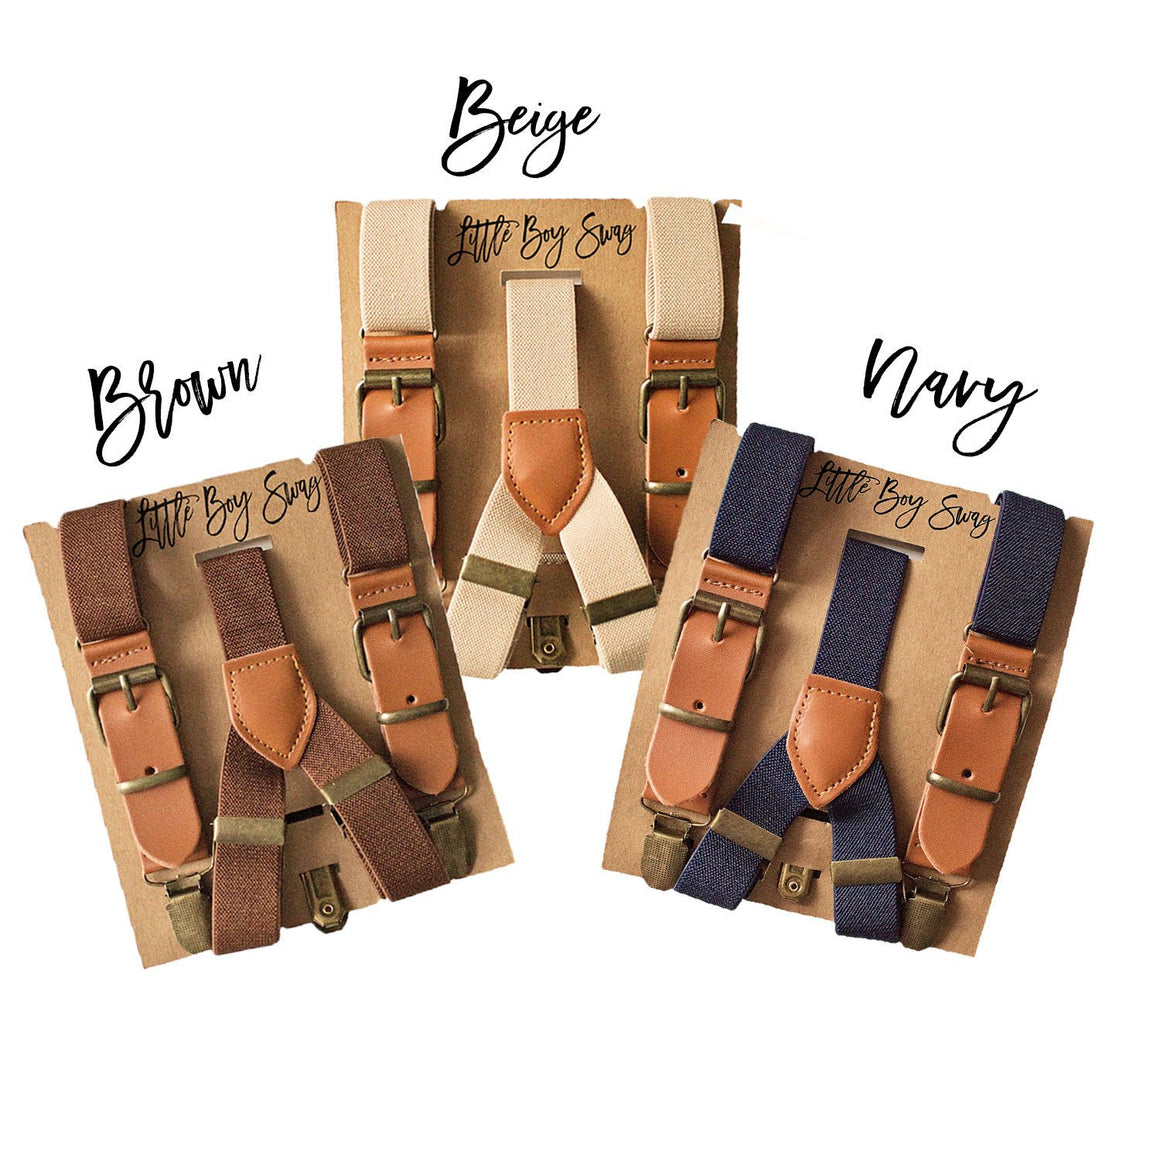 Leather Suspenders Brown/Beige/Navy - Newborn to Adult Sizes